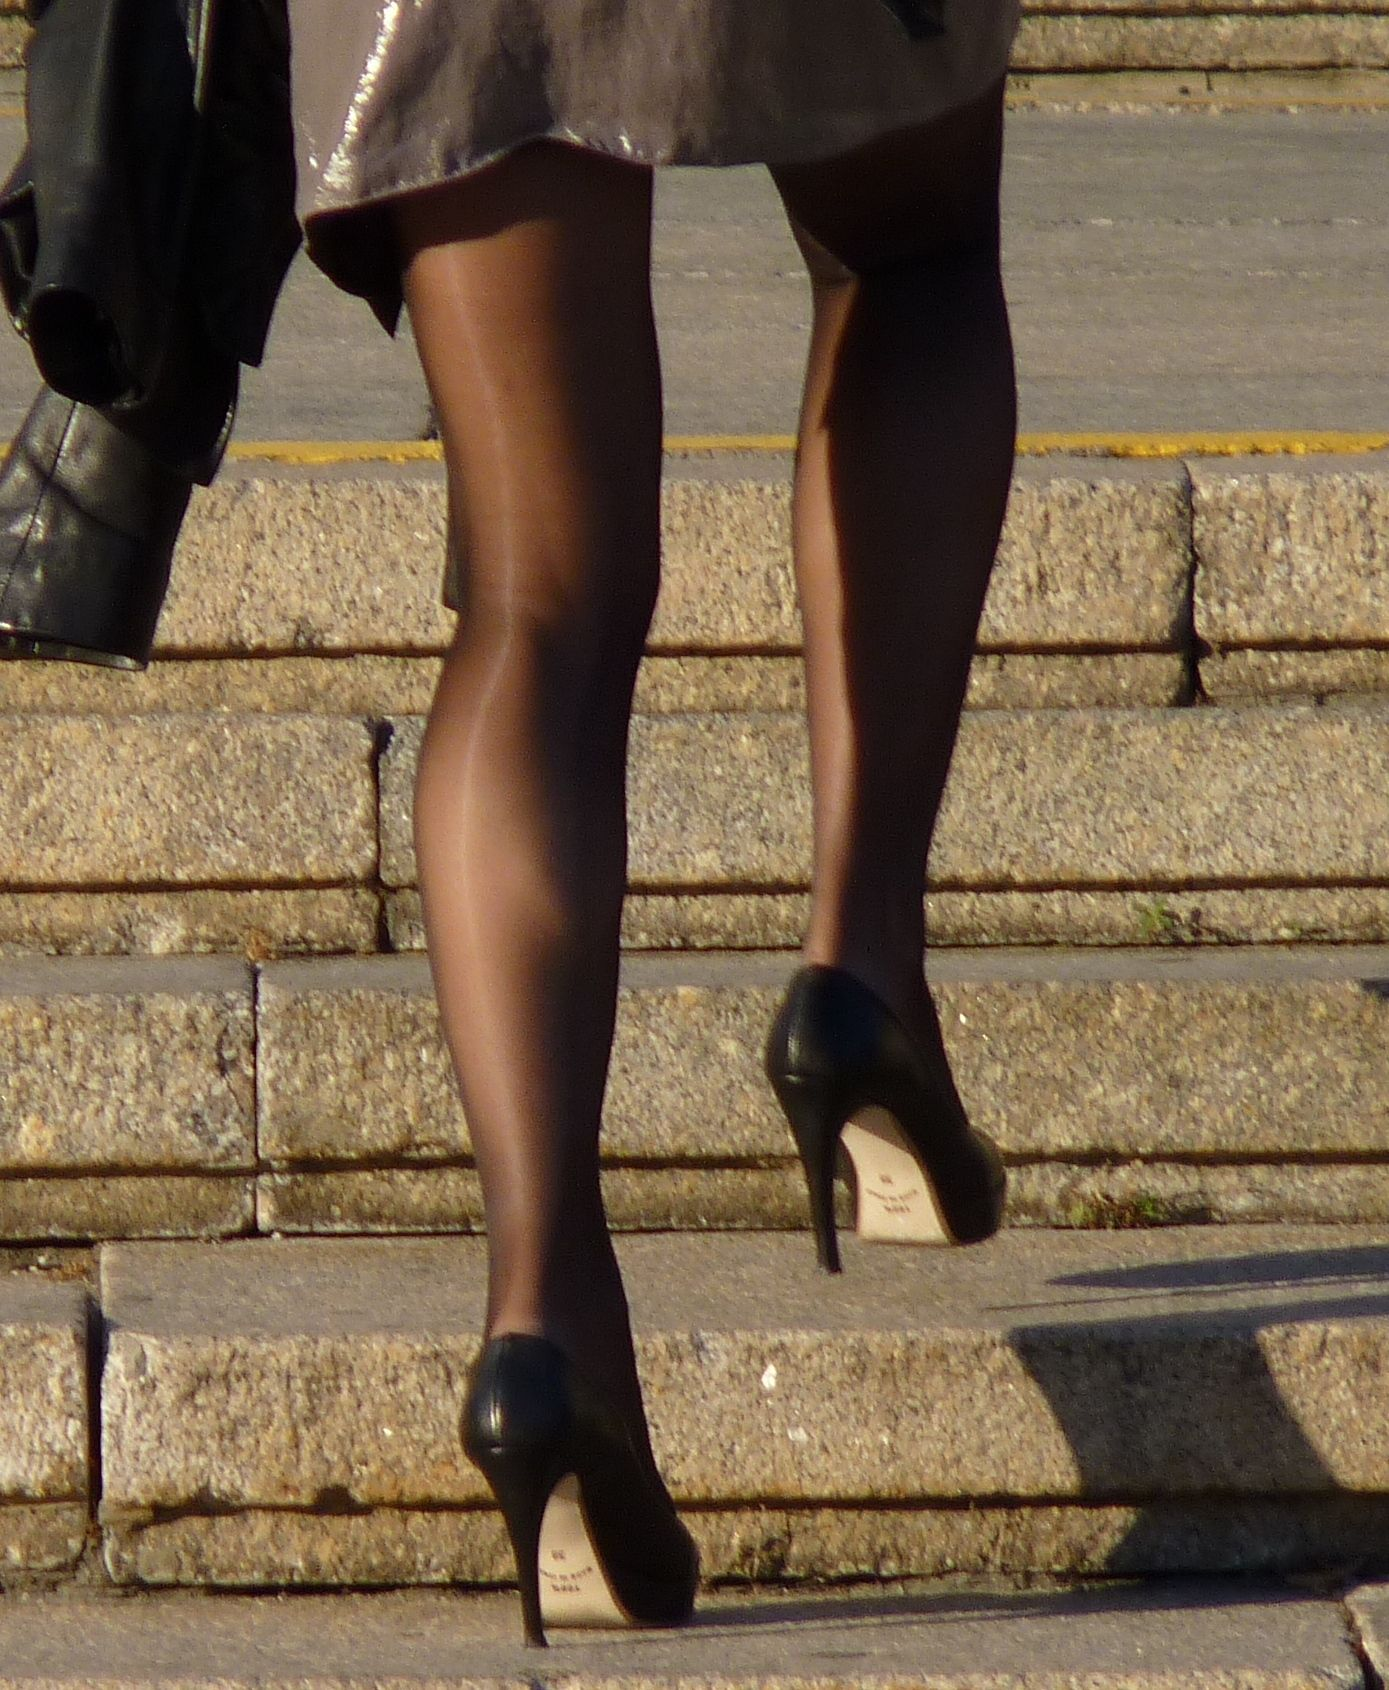 wearing Wife pantyhose stopped